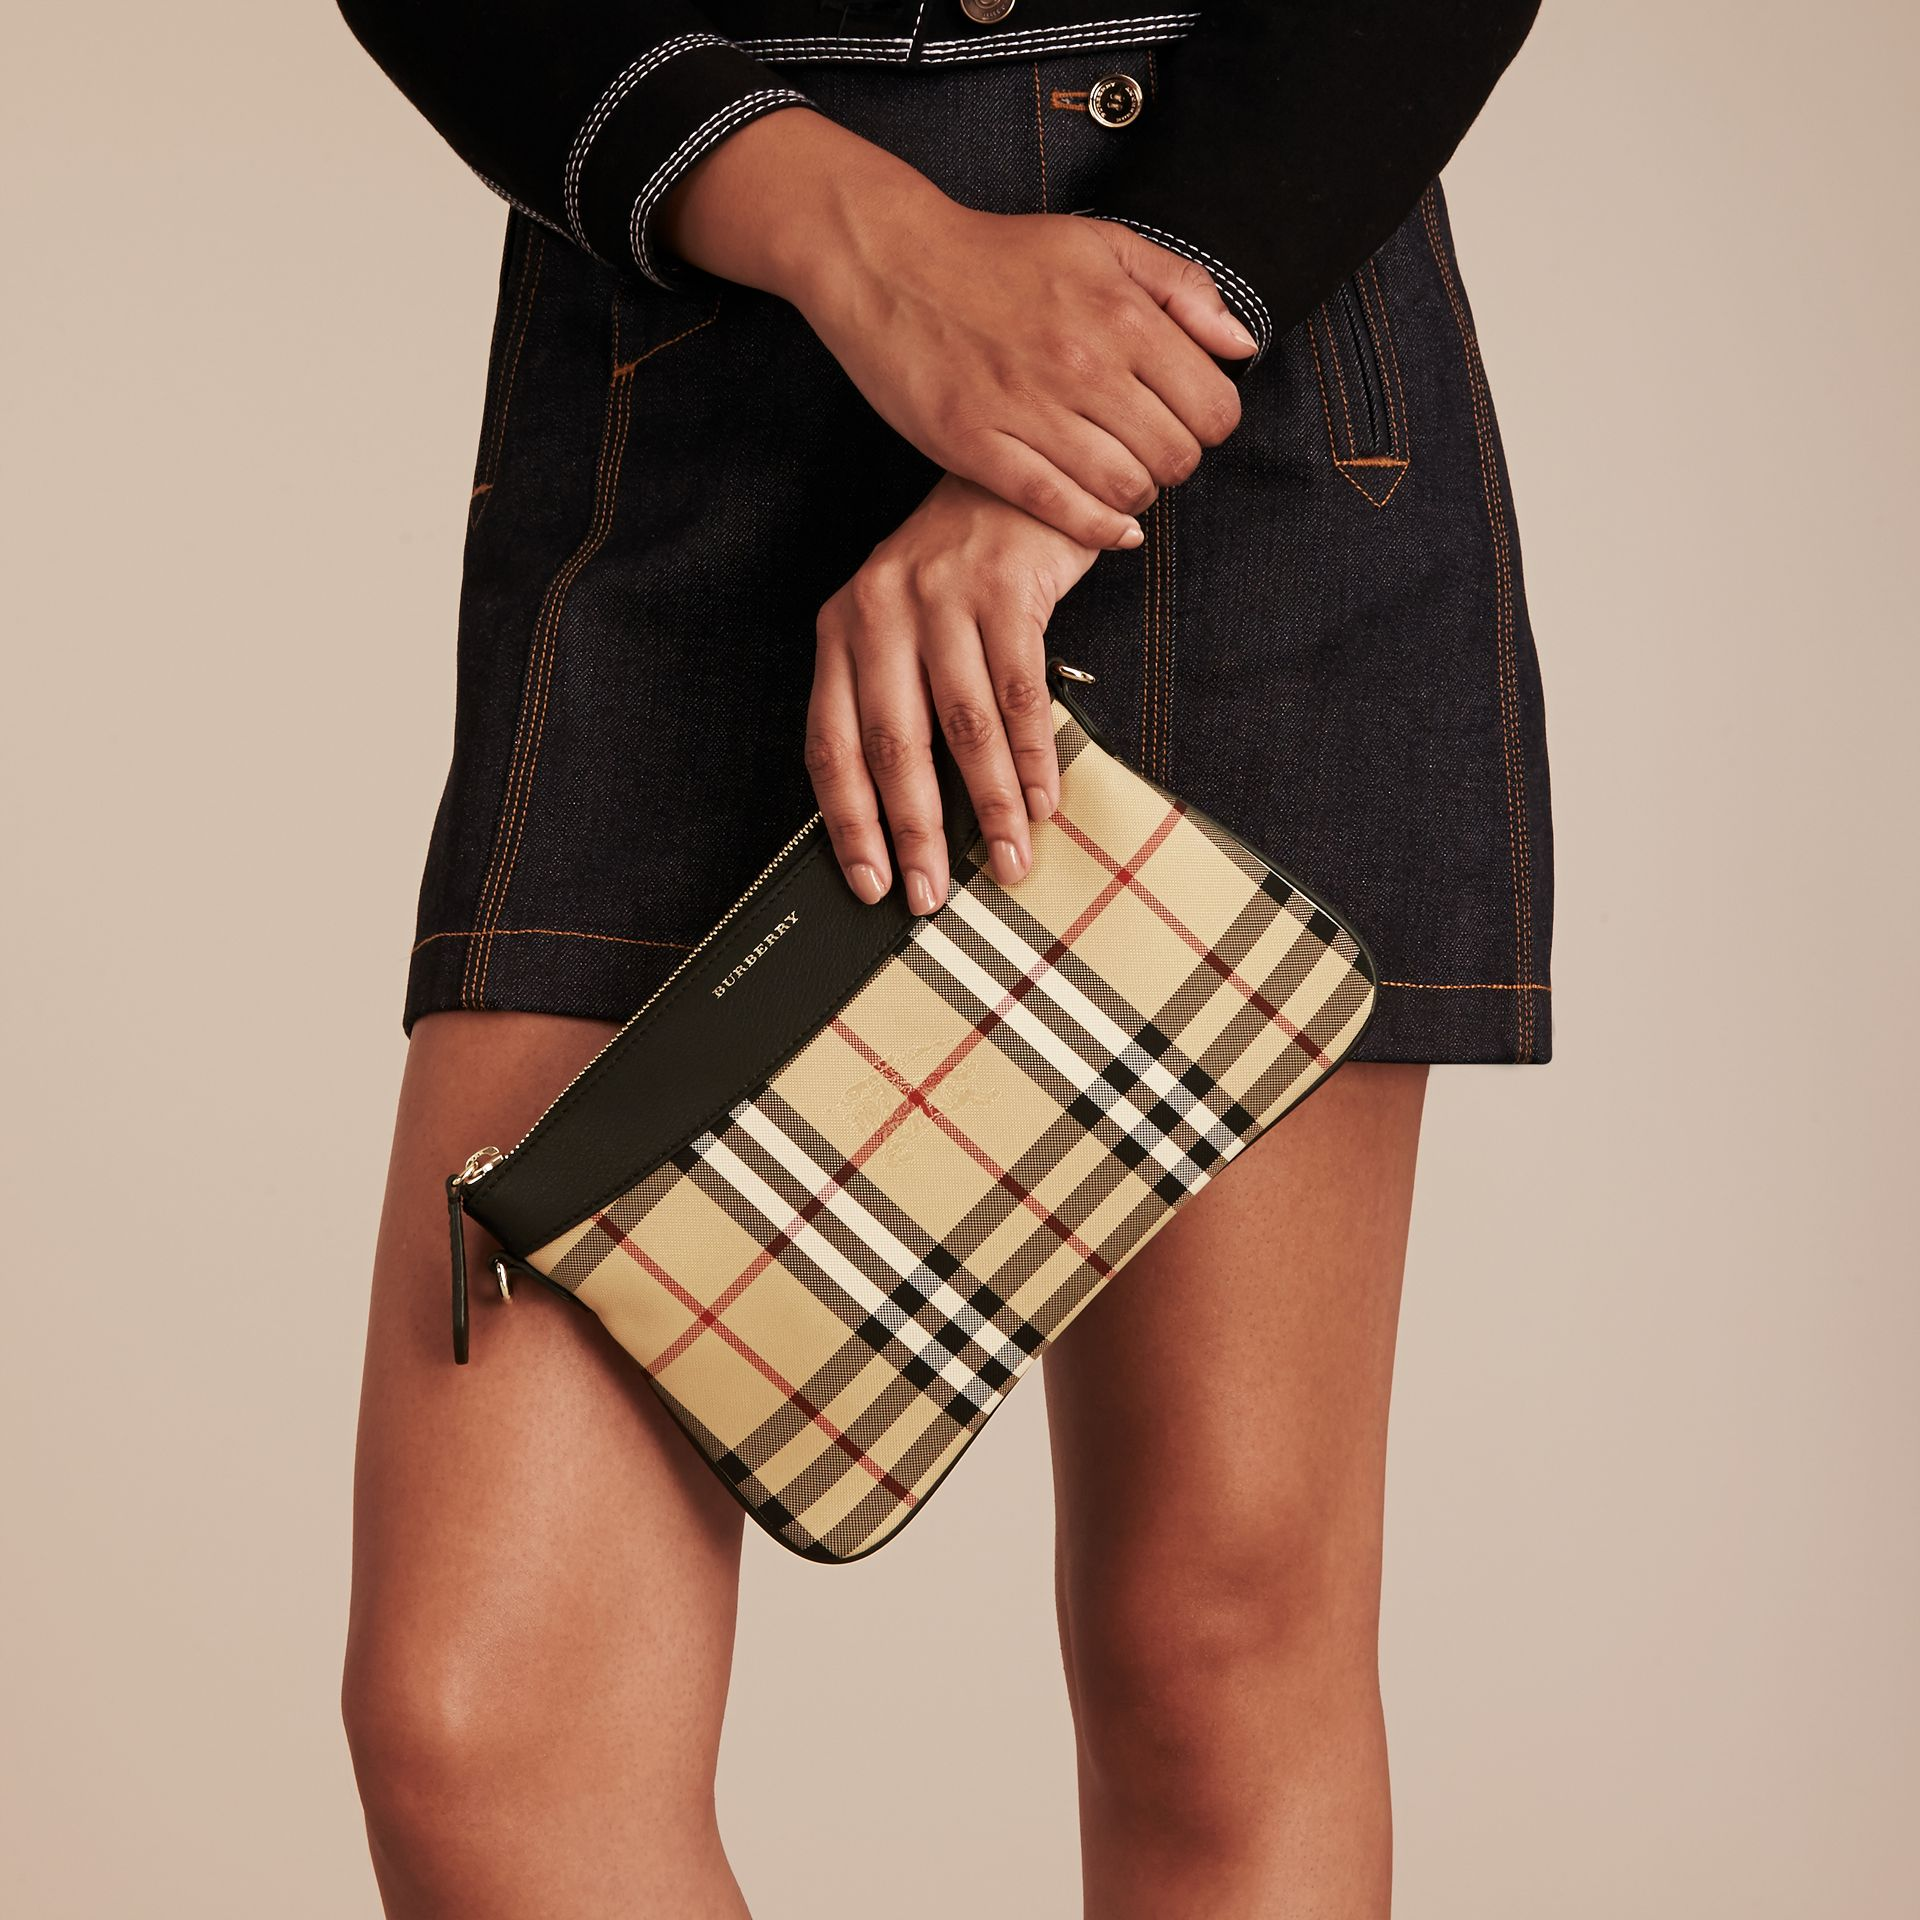 Horseferry Check and Leather Clutch Bag in Black - Women | Burberry - gallery image 3